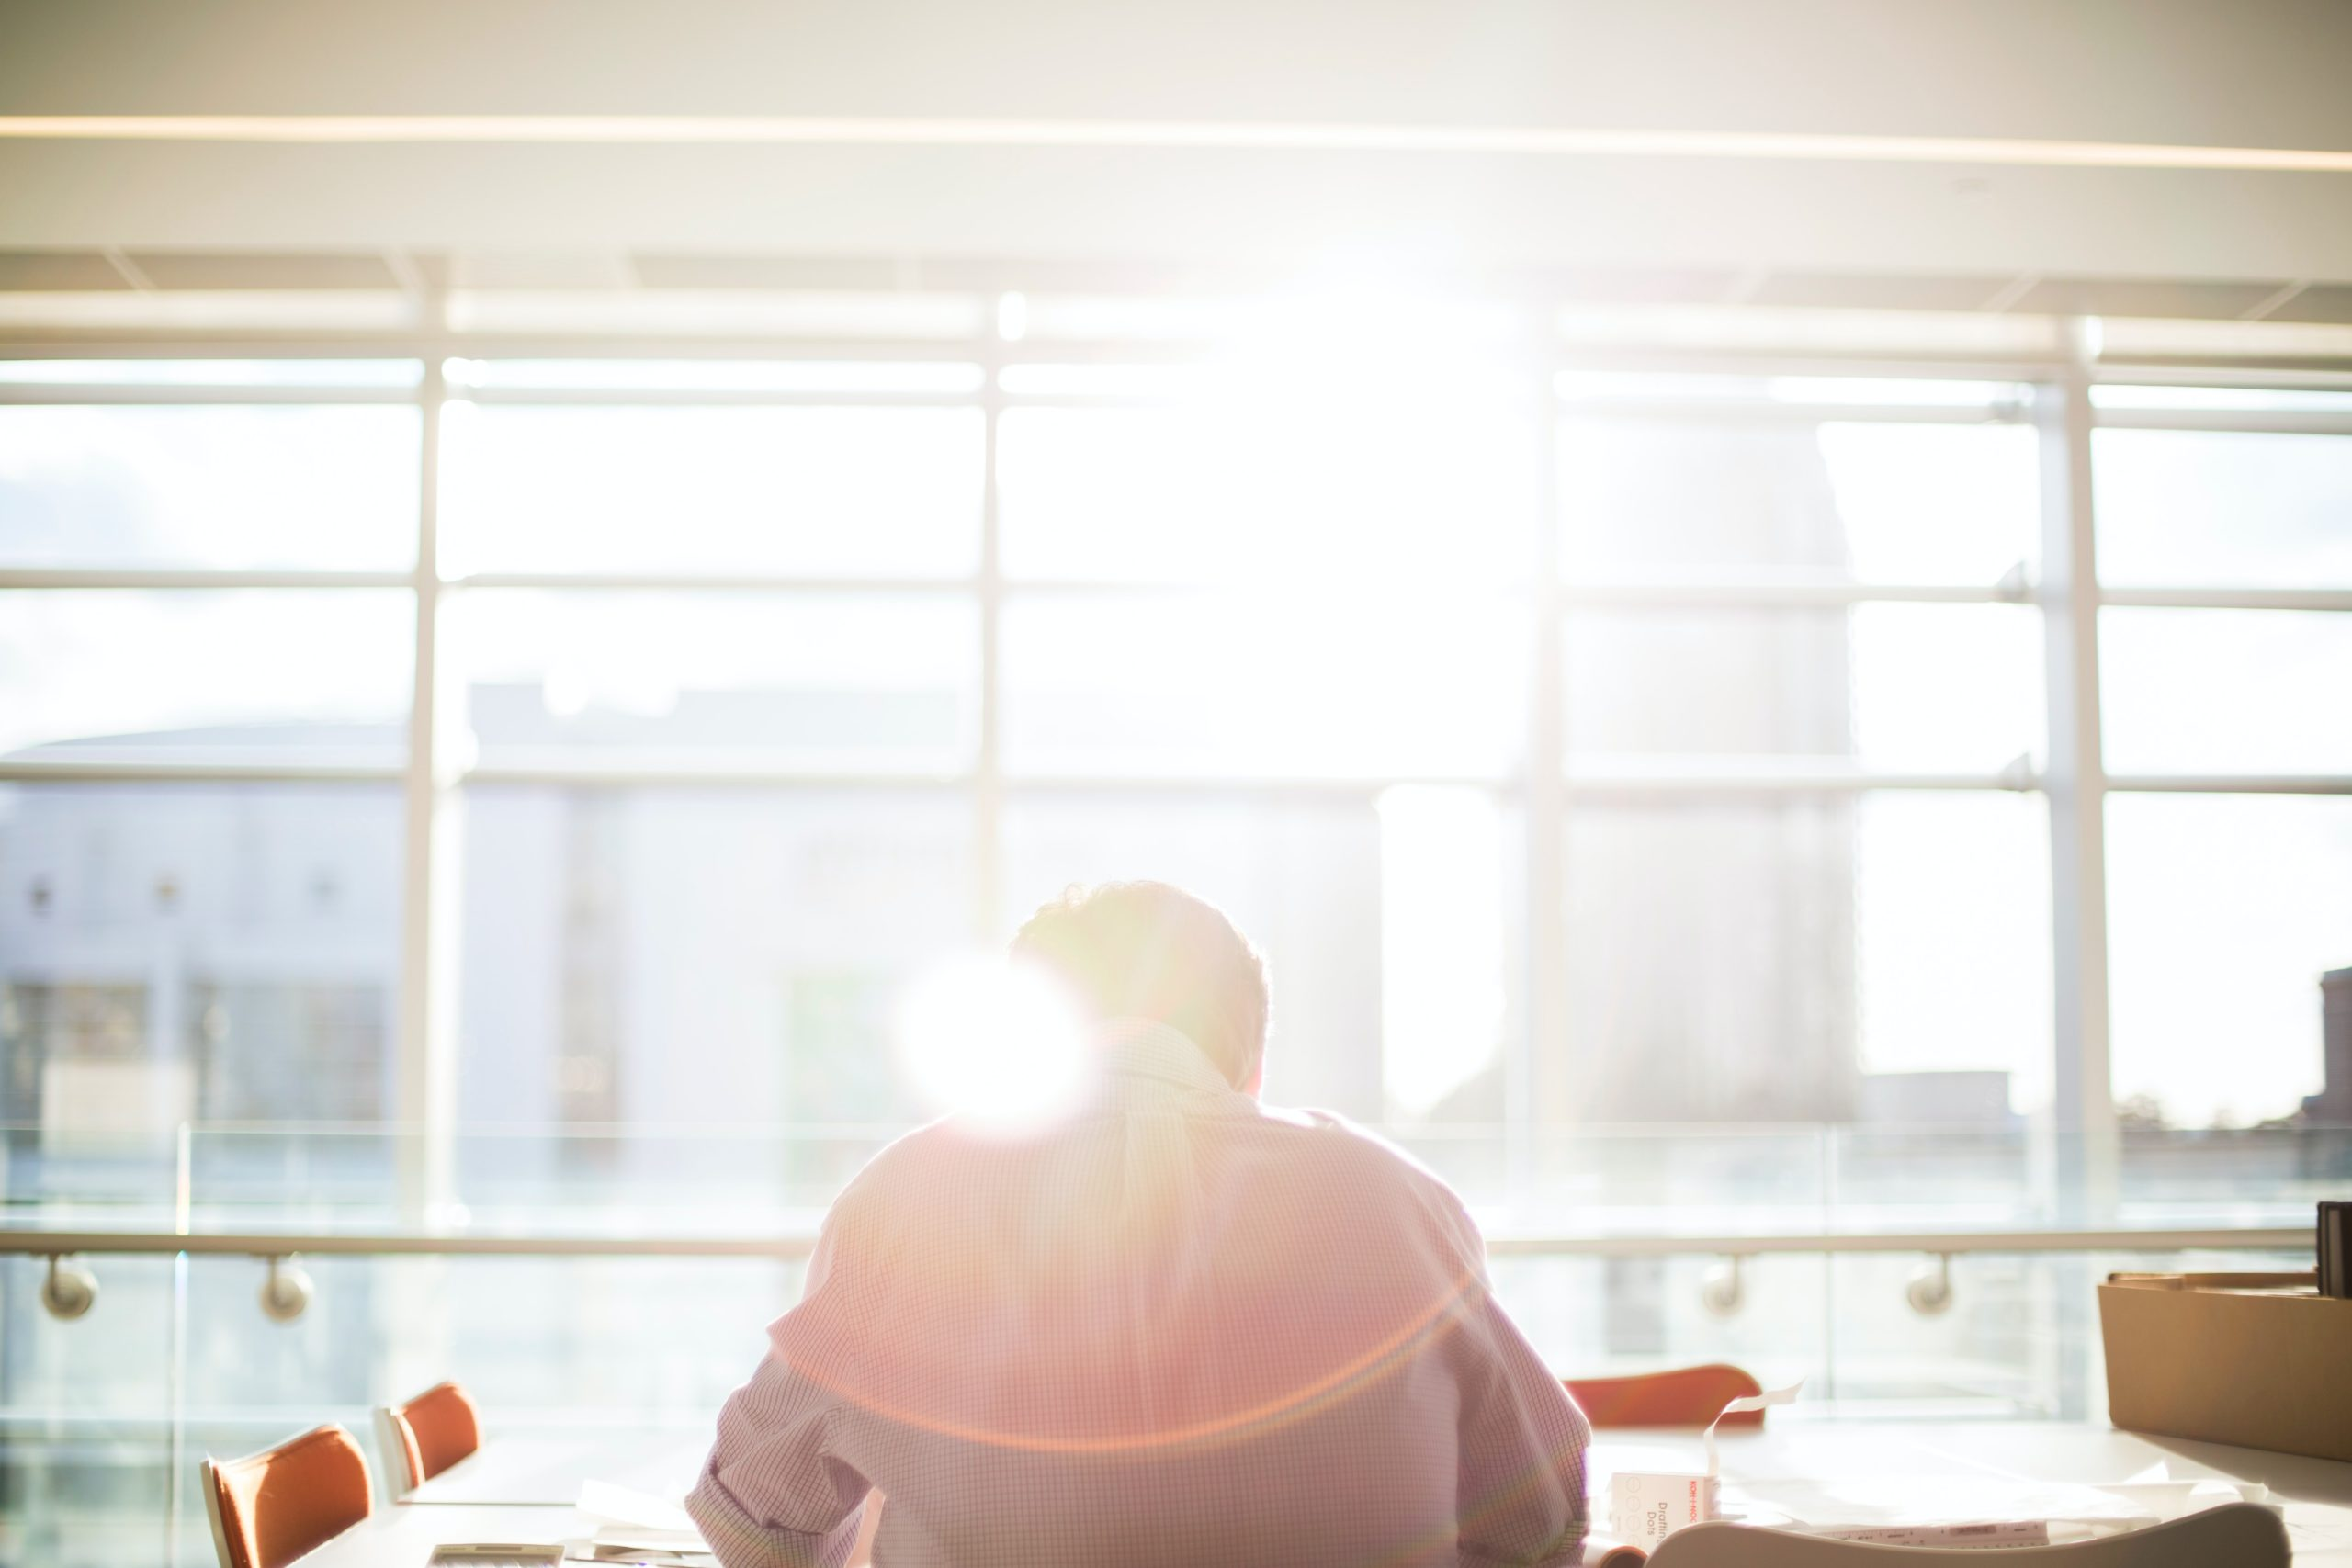 A picture of a man working in an office next to a window with the sun shining through